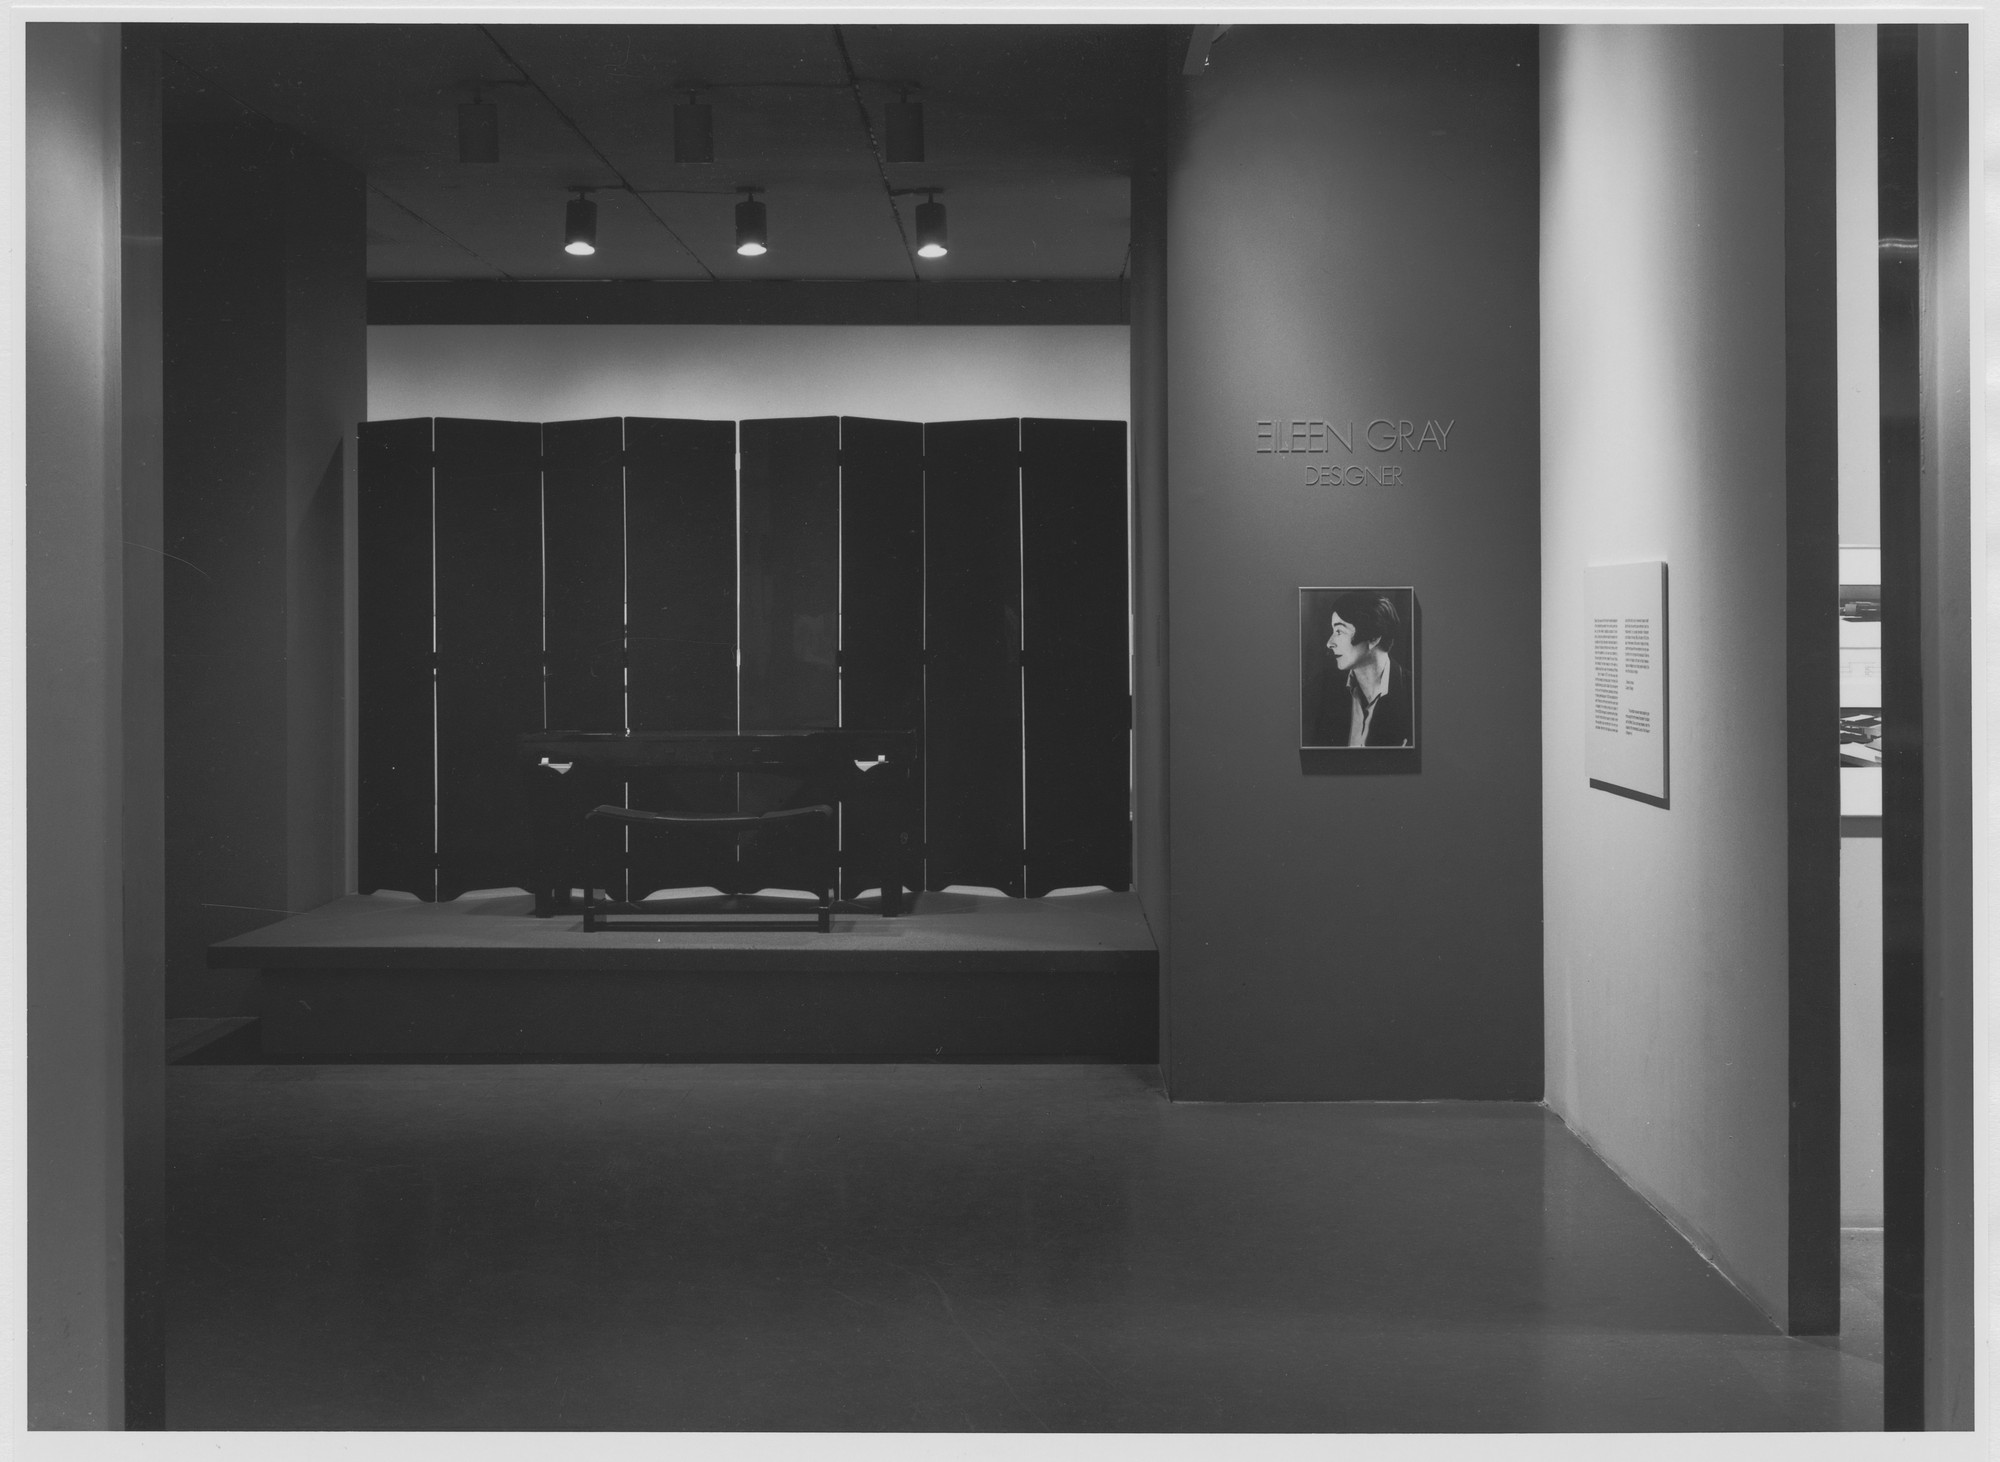 "Installation view of the exhibition, ""Eileen Gray"" February 6, 1980–April 1, 1980. Photographic Archive. The Museum of Modern Art Archives, New York. IN1286.1. Photograph by Mali Olatunji."